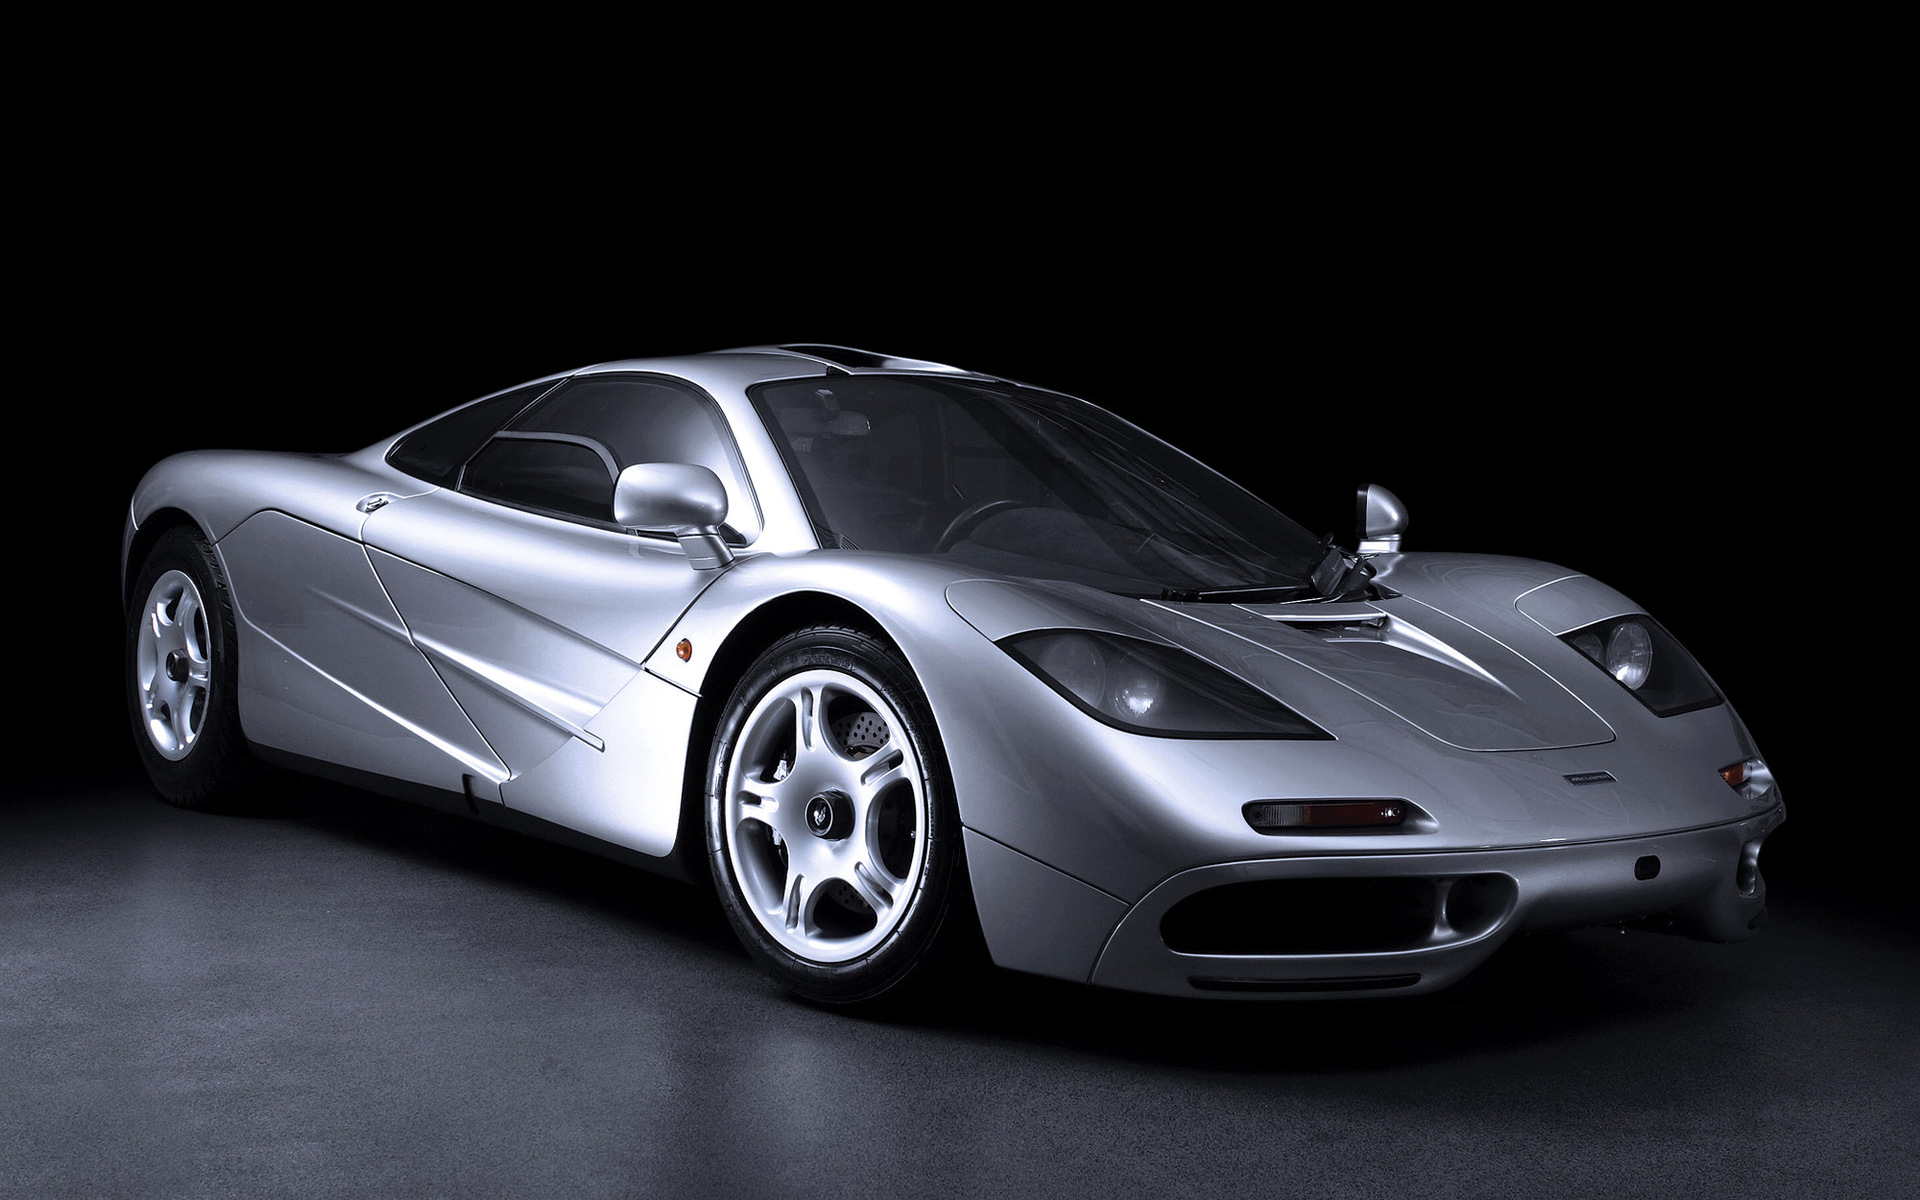 McLaren F1 (1993) Wallpapers and HD Images - Car Pixel